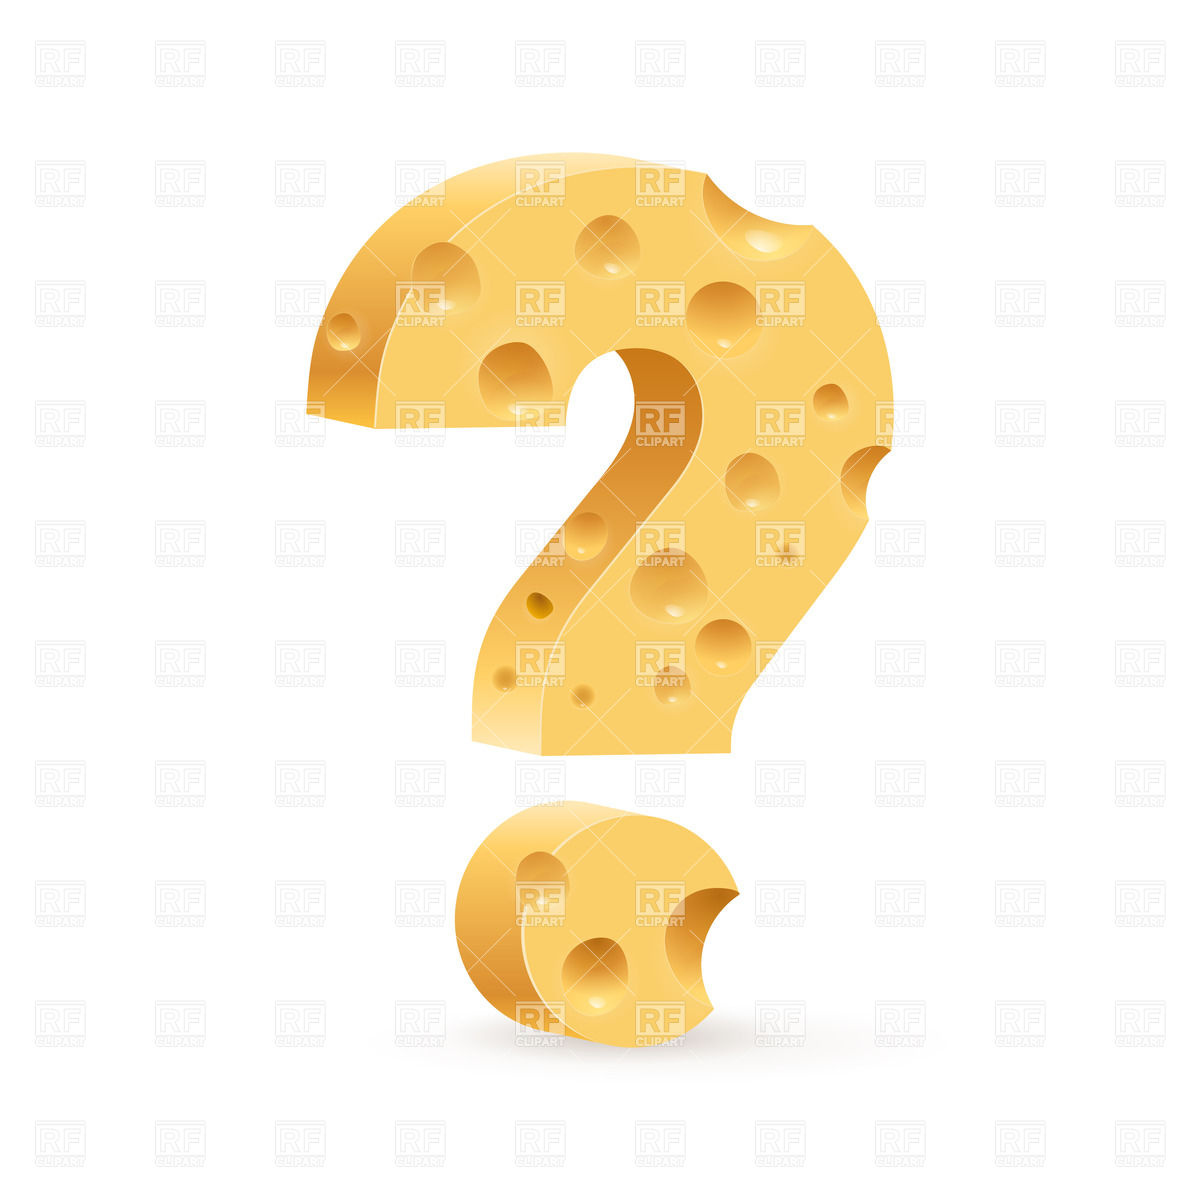 Cheesy Question Mark 30863 Download Royalty Free Vector Clipart  Eps